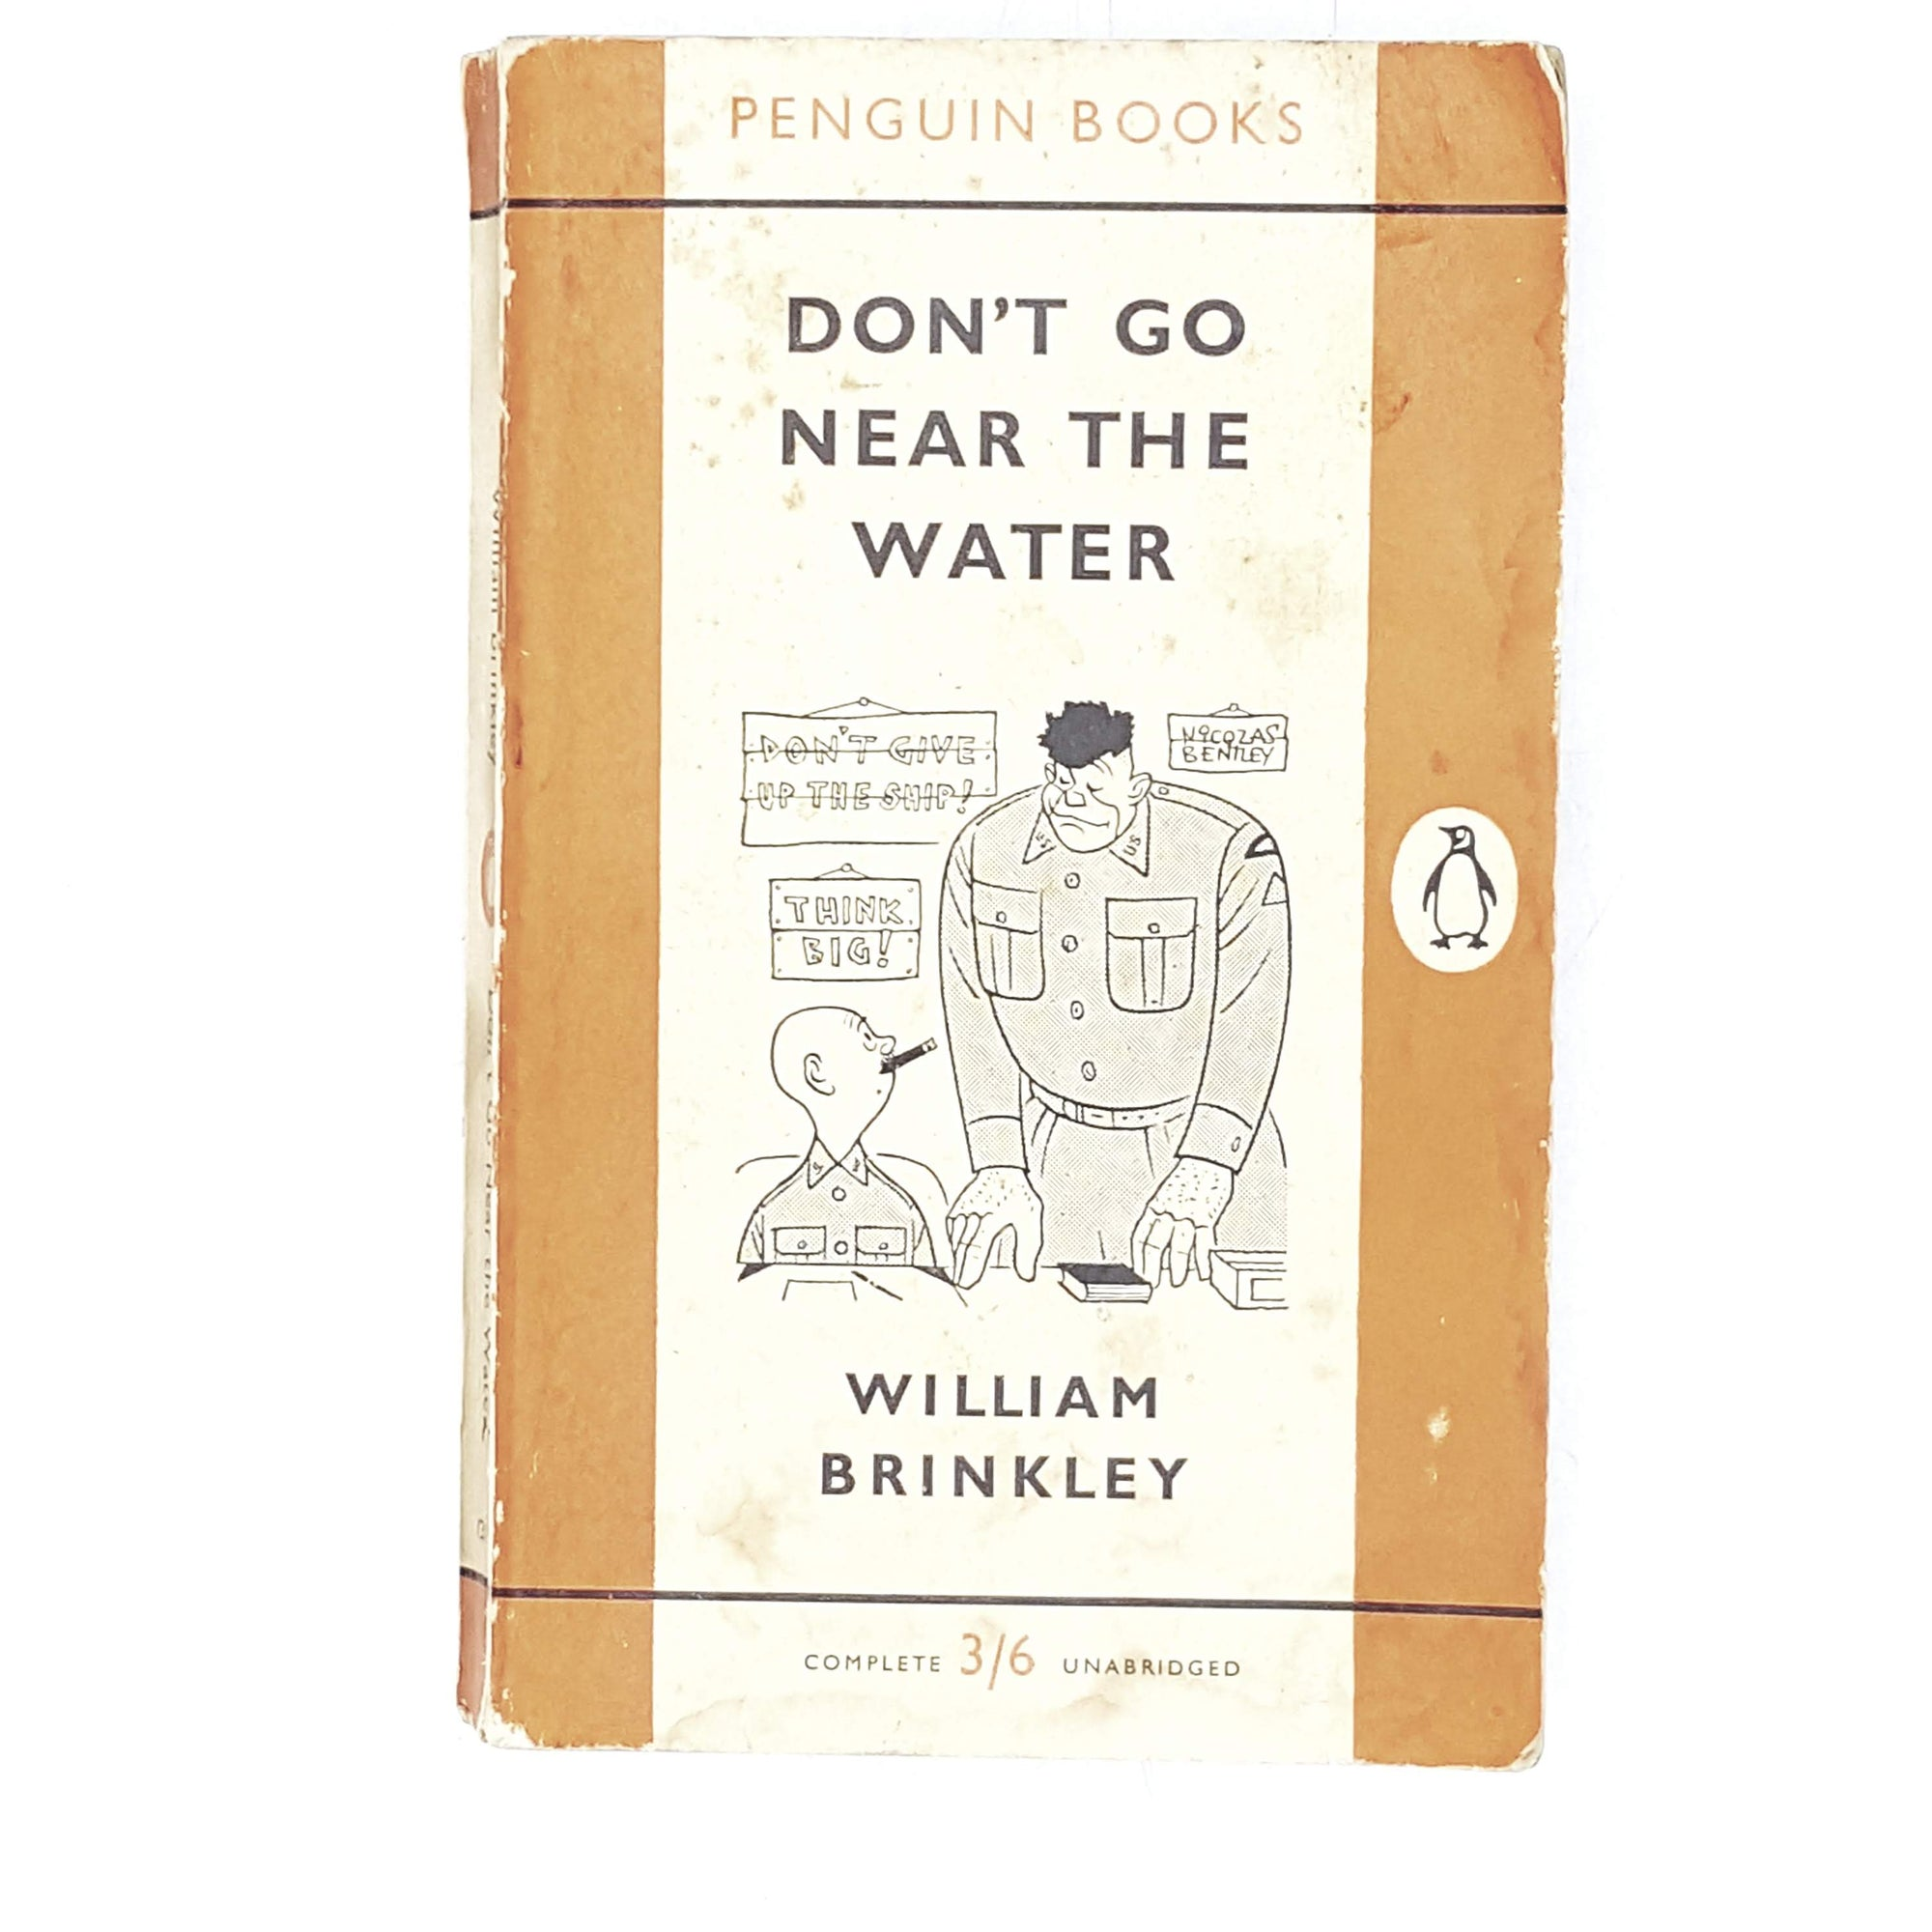 Vintage Penguin Don't Go Near the Water by William Brinkley 1959